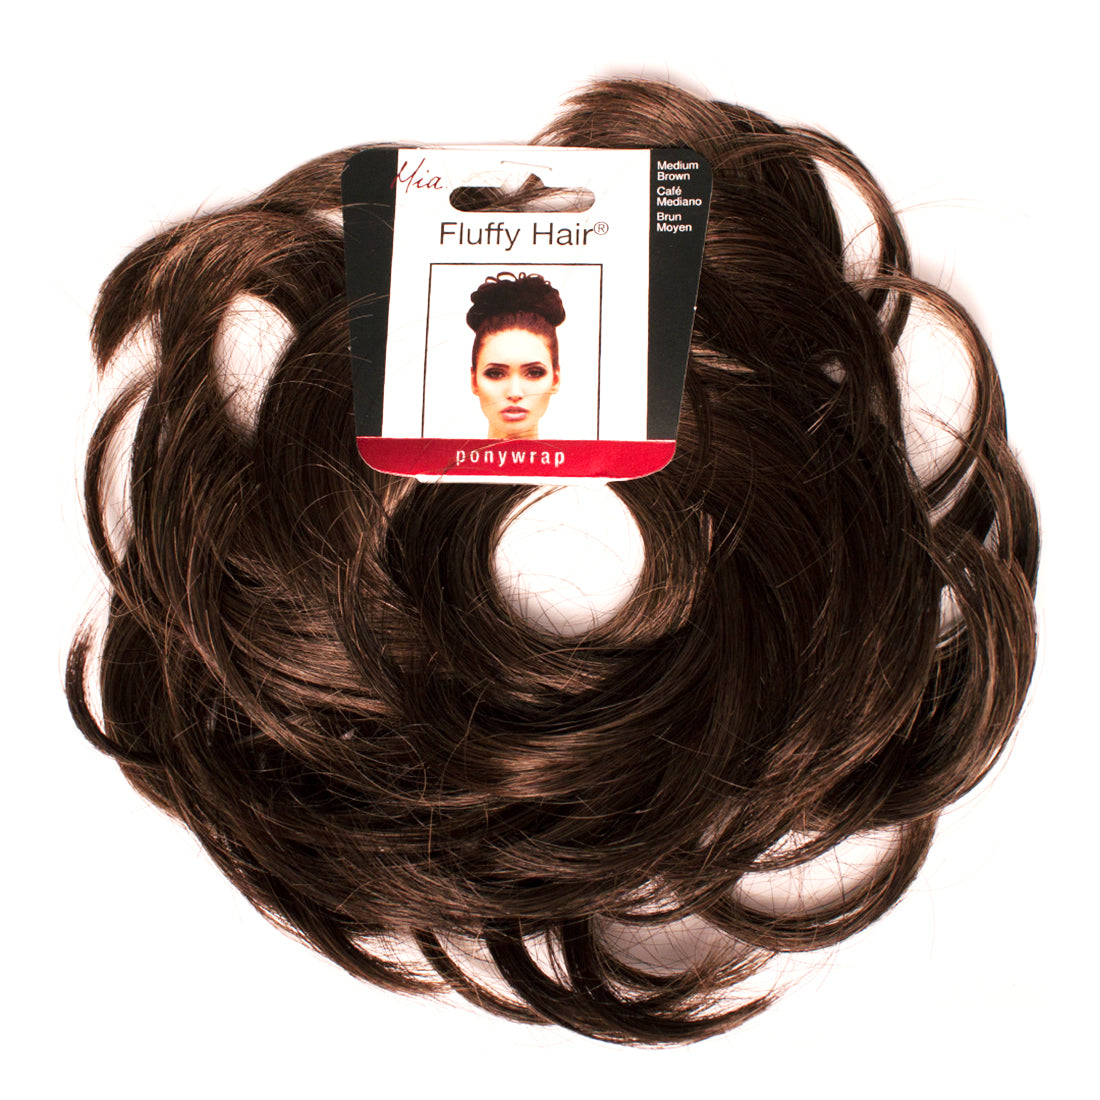 Mia® Fluffy Hair Ponywrap on packaging - medium brown color - by #MiaKaminski of #MiaBeauty